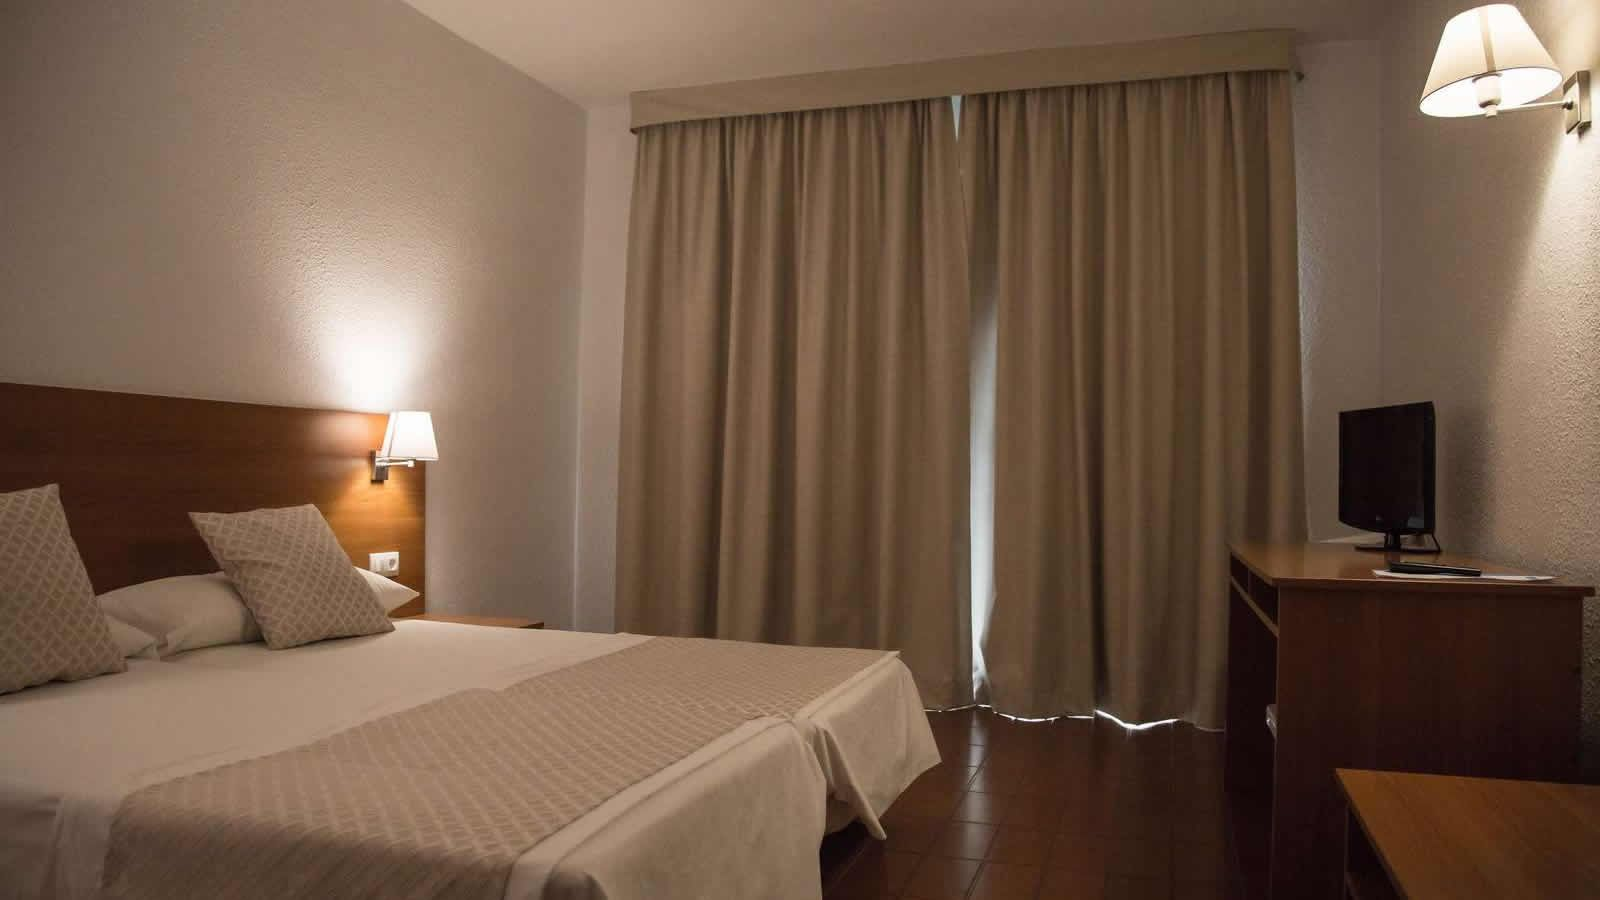 Double room at the Carlos III Hotel in Alcanar - San Carlos de la Rapita – the Ebro Delta